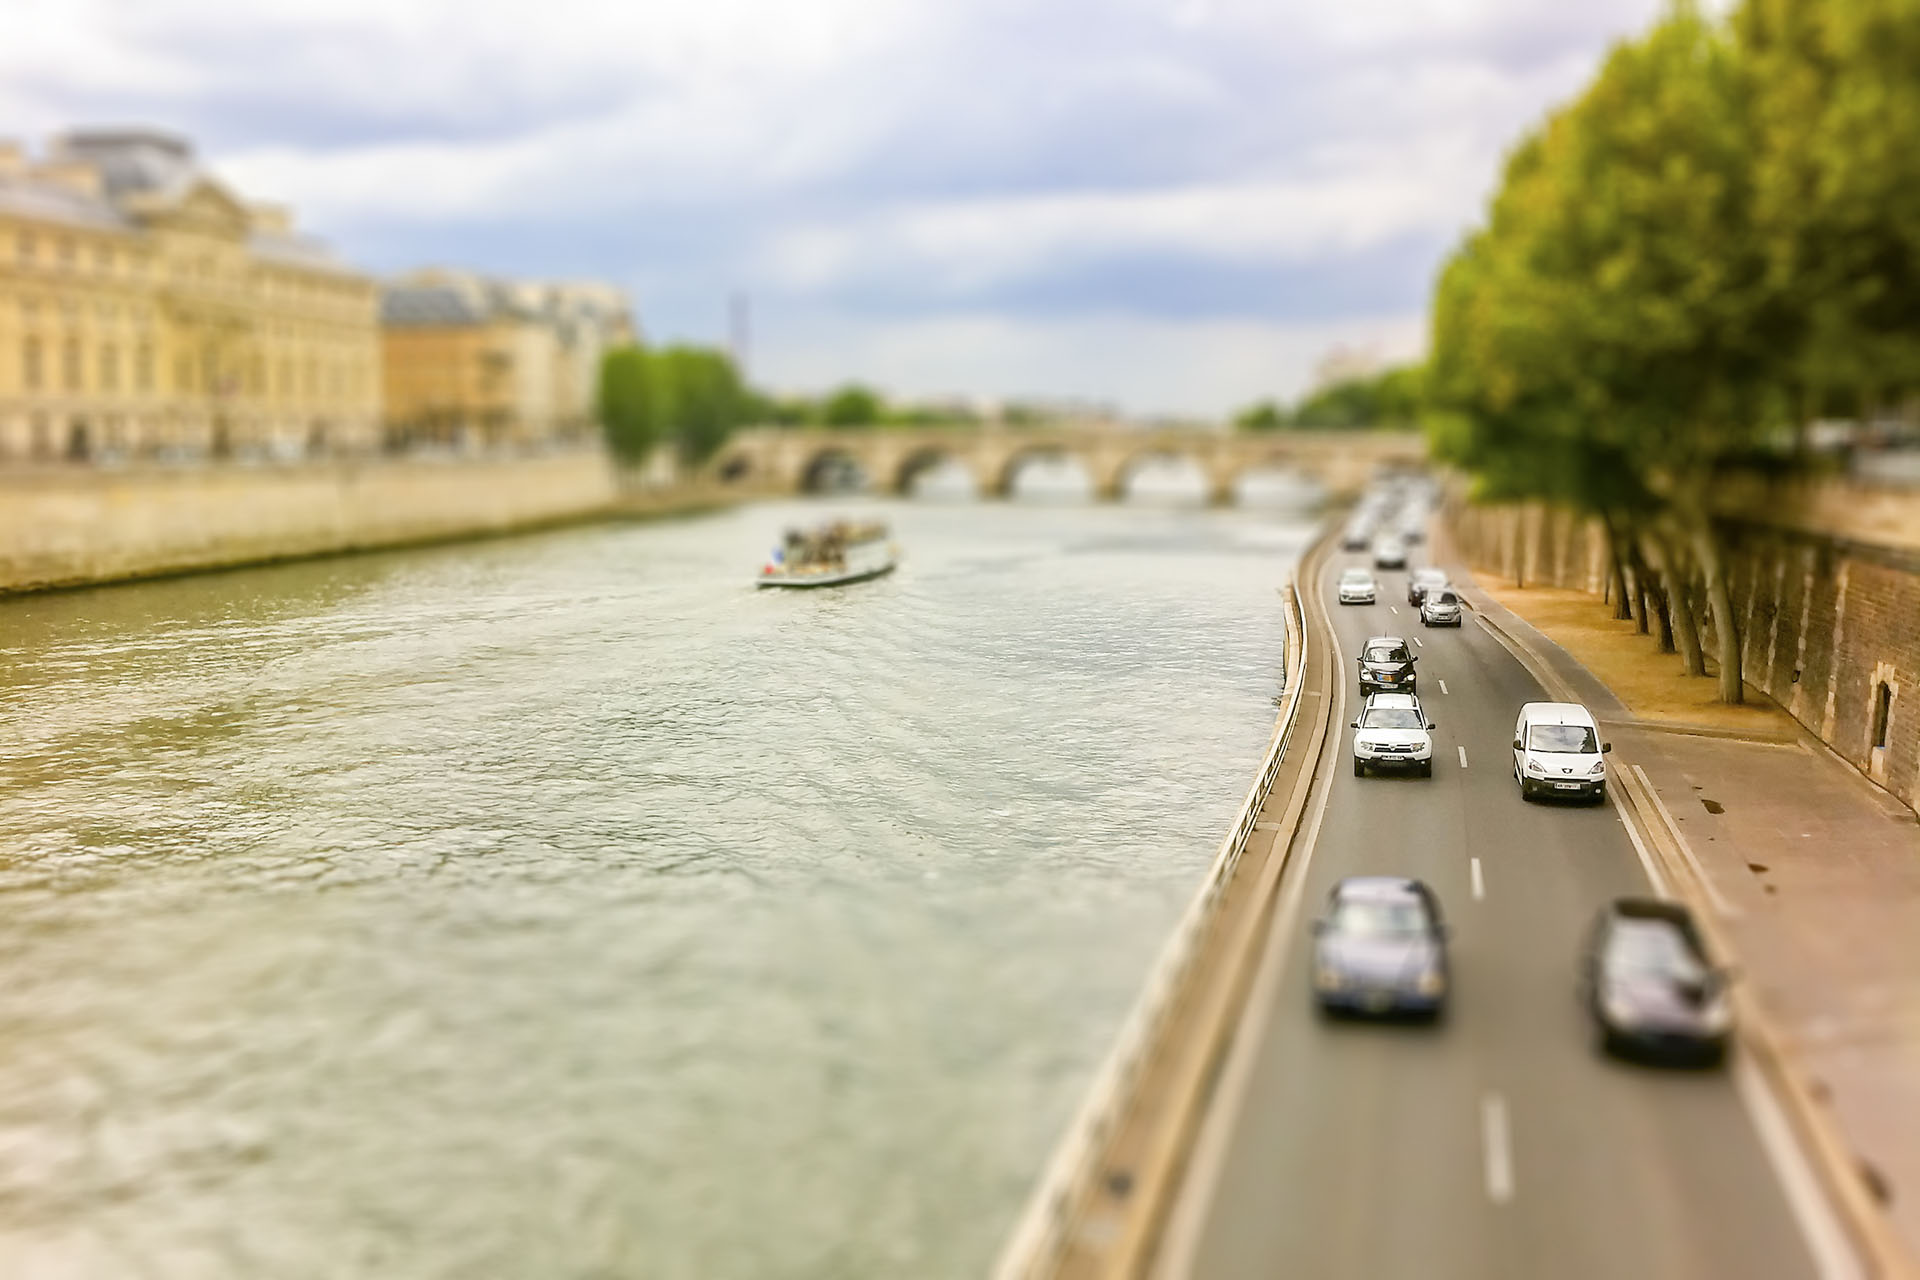 The Seine river in central Paris, France